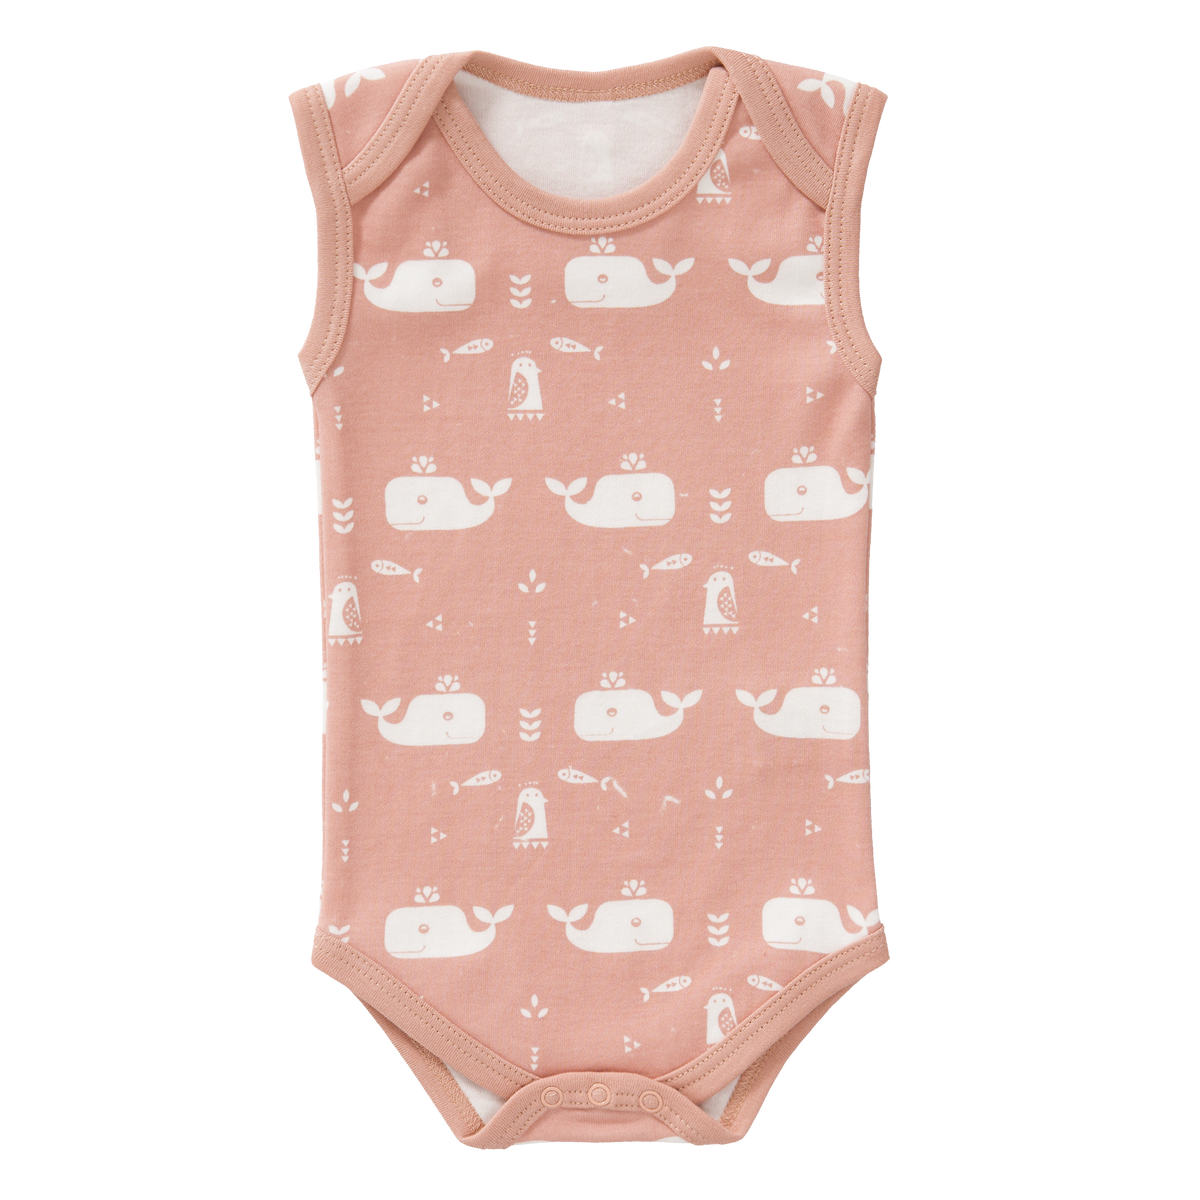 Fresk Orgnanic- Bodysuit without Sleeves Whale Mellow Rose Size: 3‐6 m and 6-12m